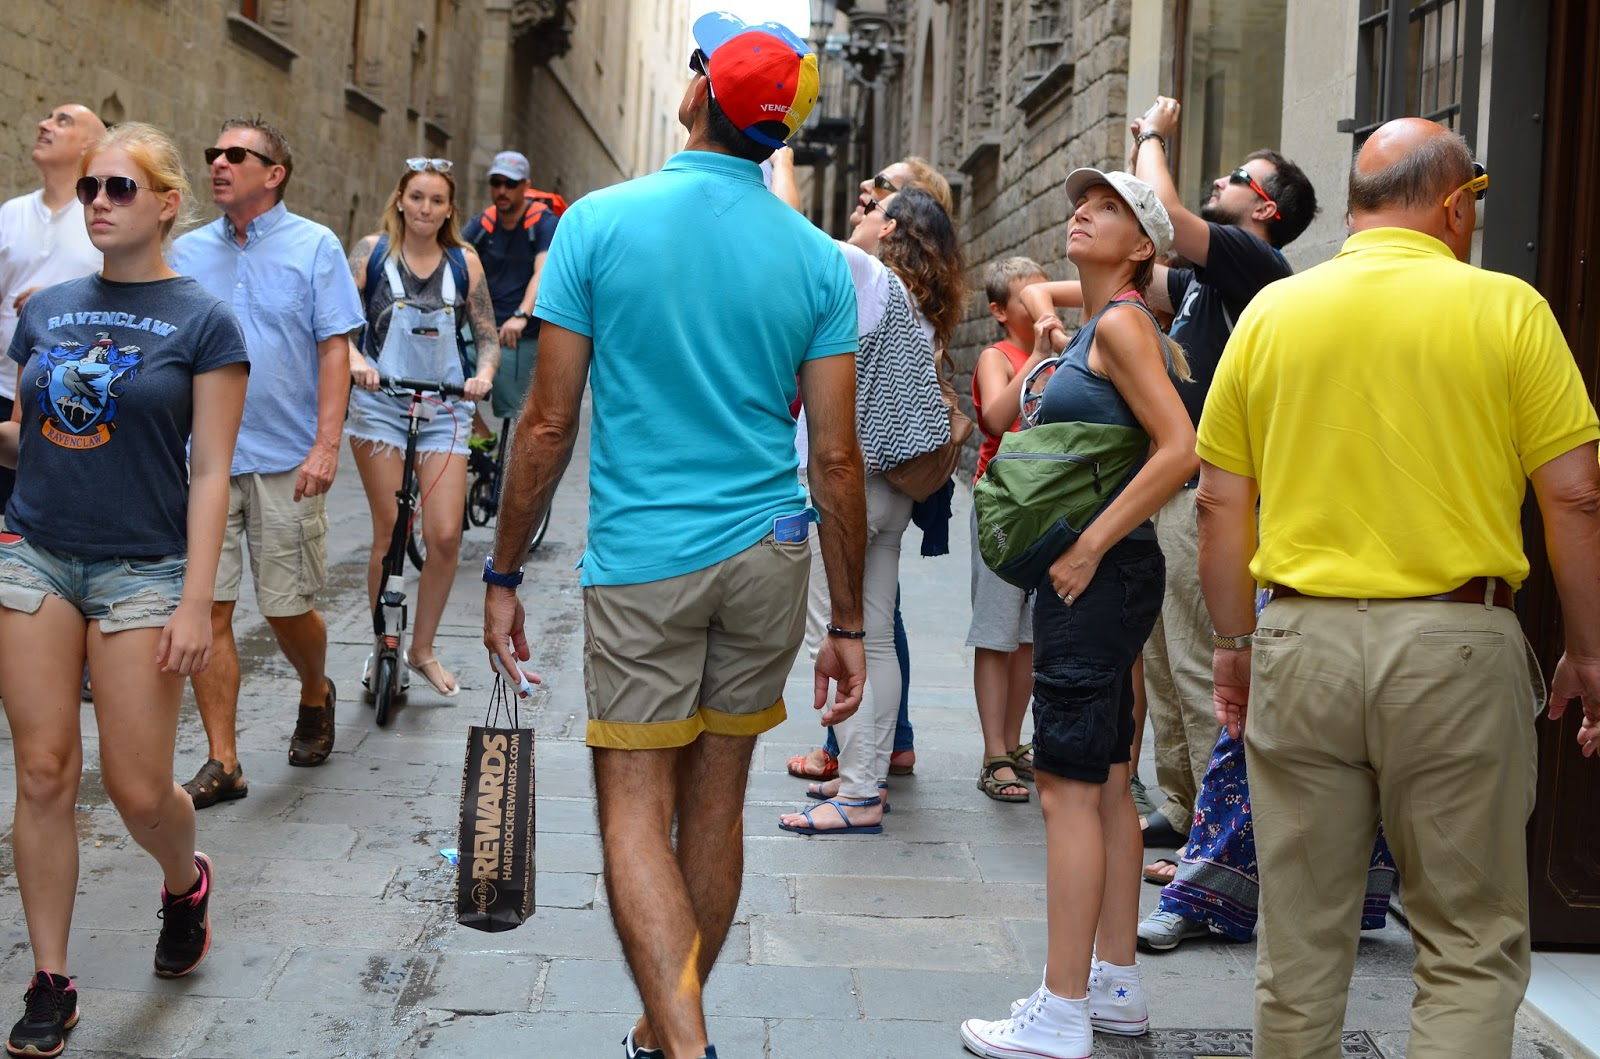 Tourists look up for best image subject at Carrer del Bisbe, Barcelona